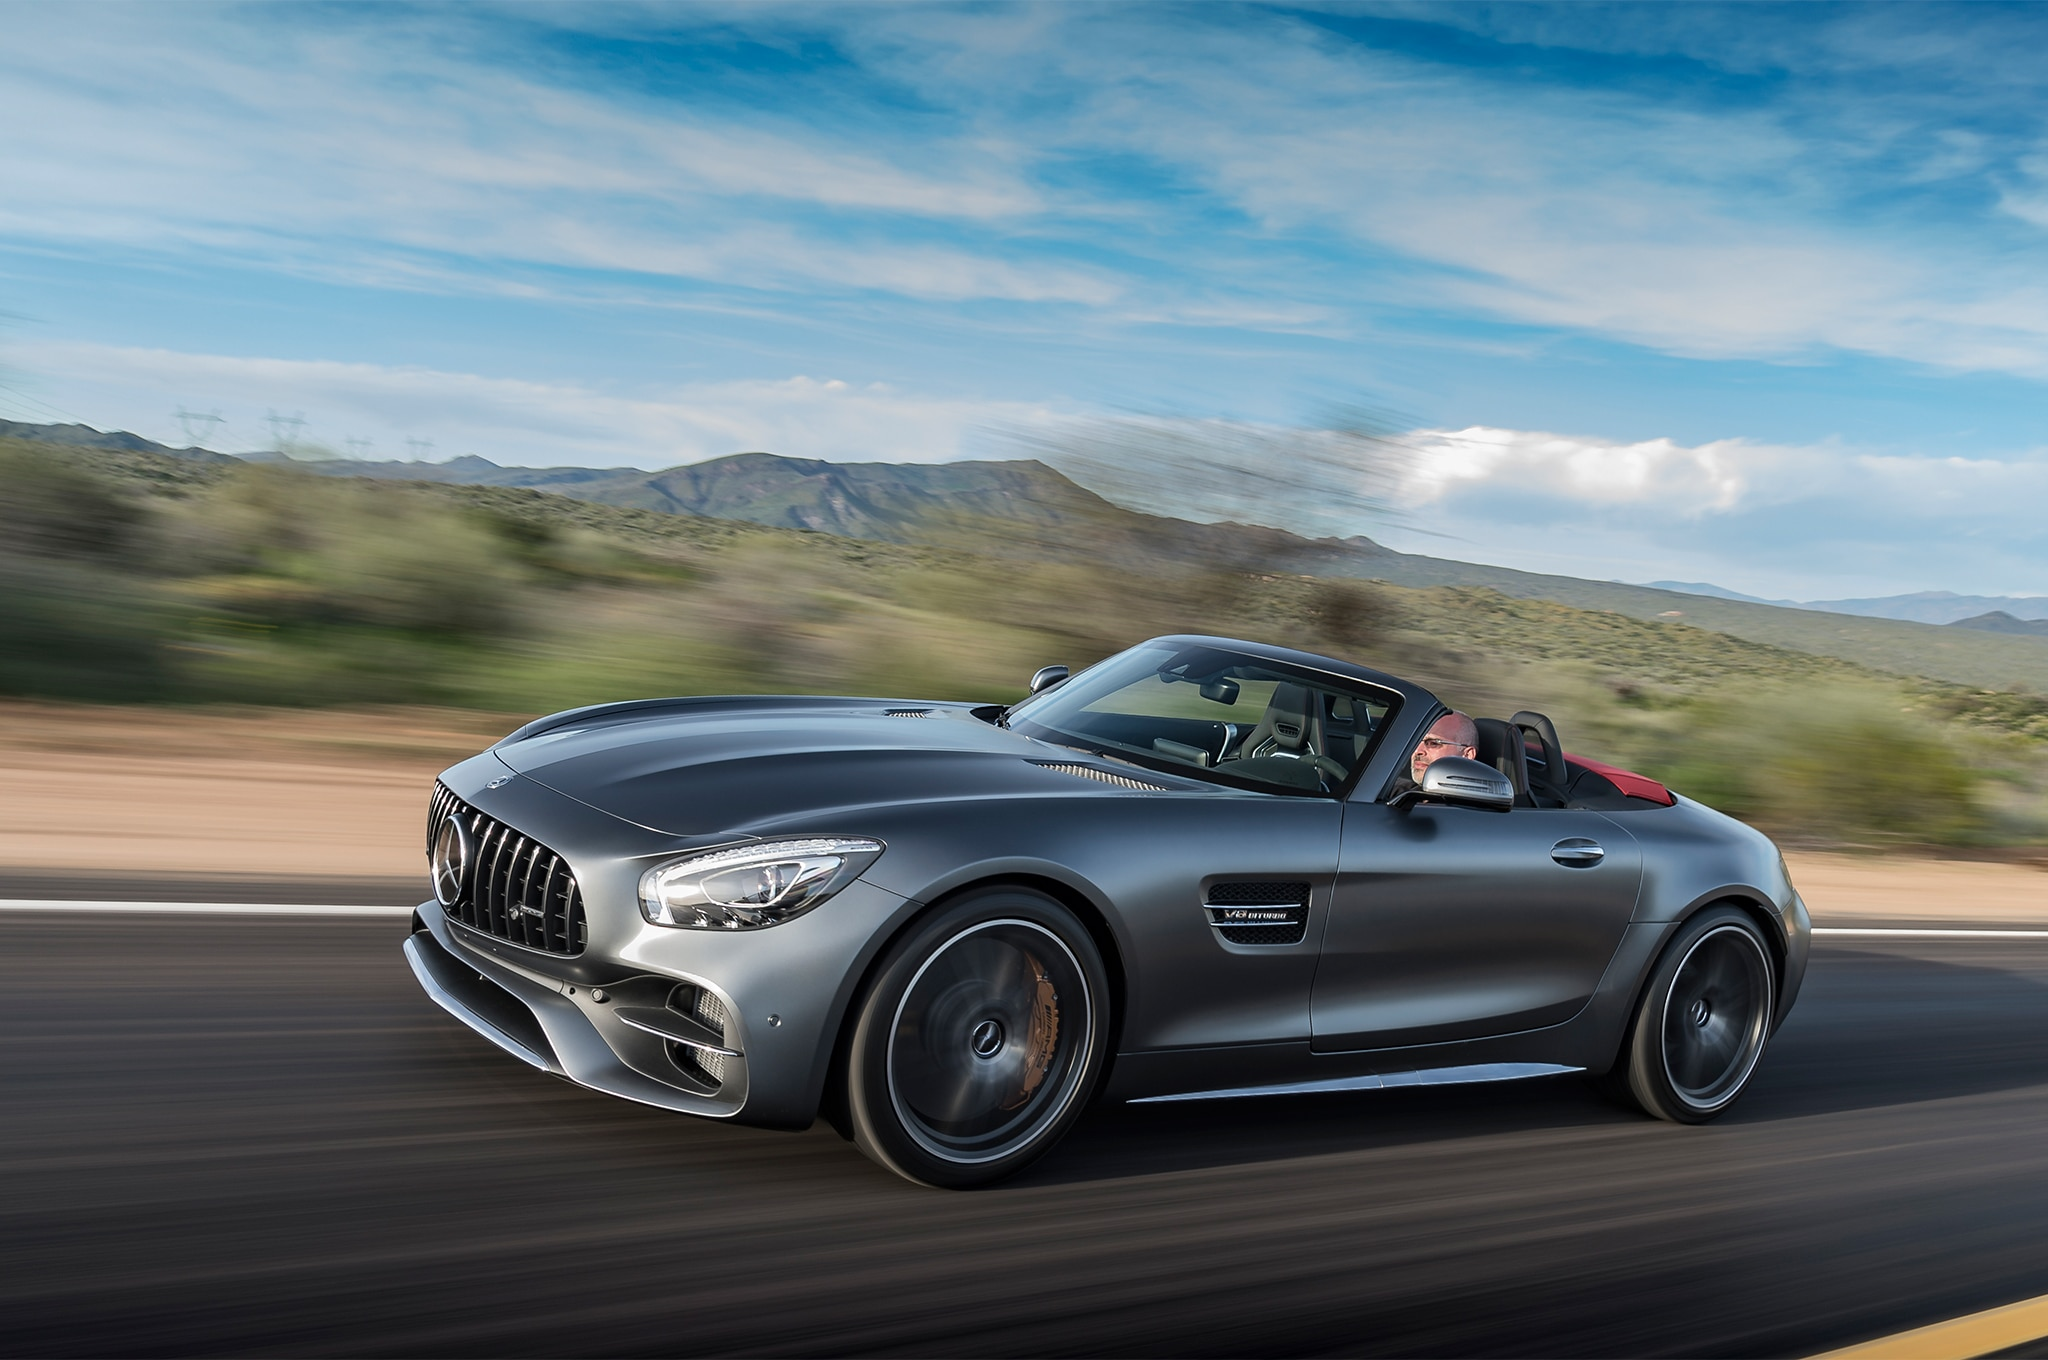 2018 mercedes amg gt and gt c roadster first drive review. Black Bedroom Furniture Sets. Home Design Ideas